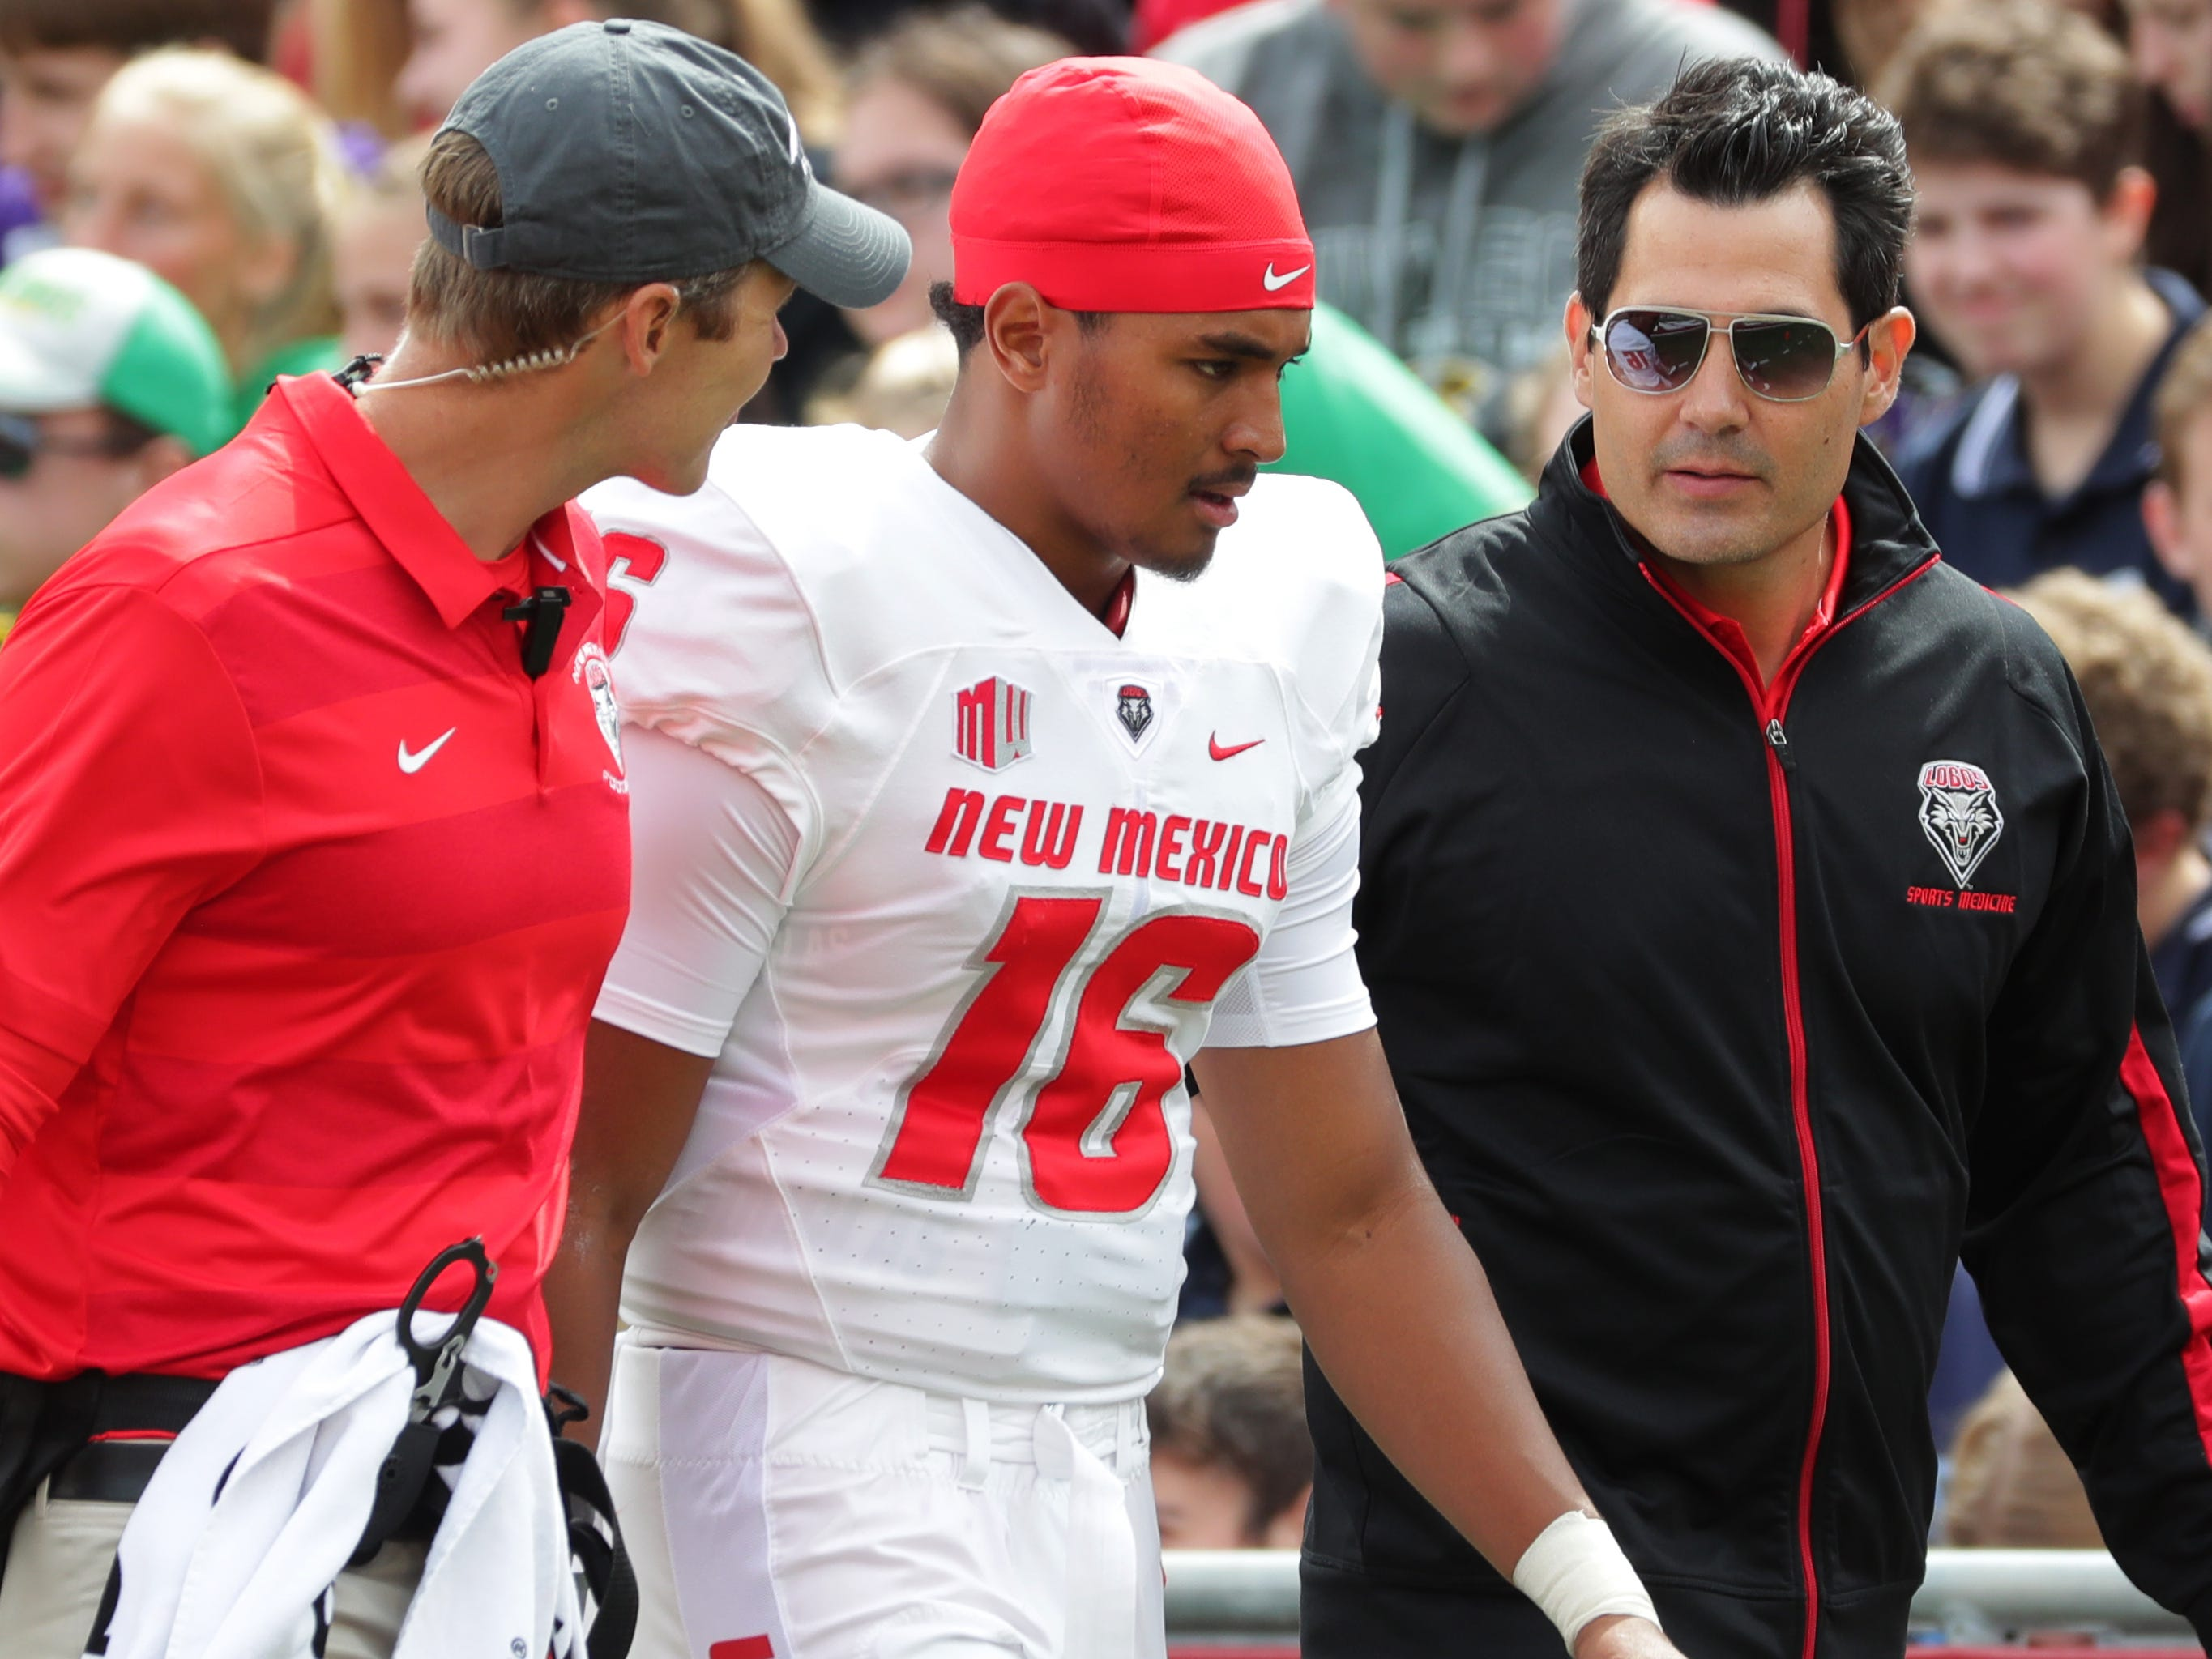 New Mexico quarterback Tevaka Tuioti leaves the field during the second quarter.